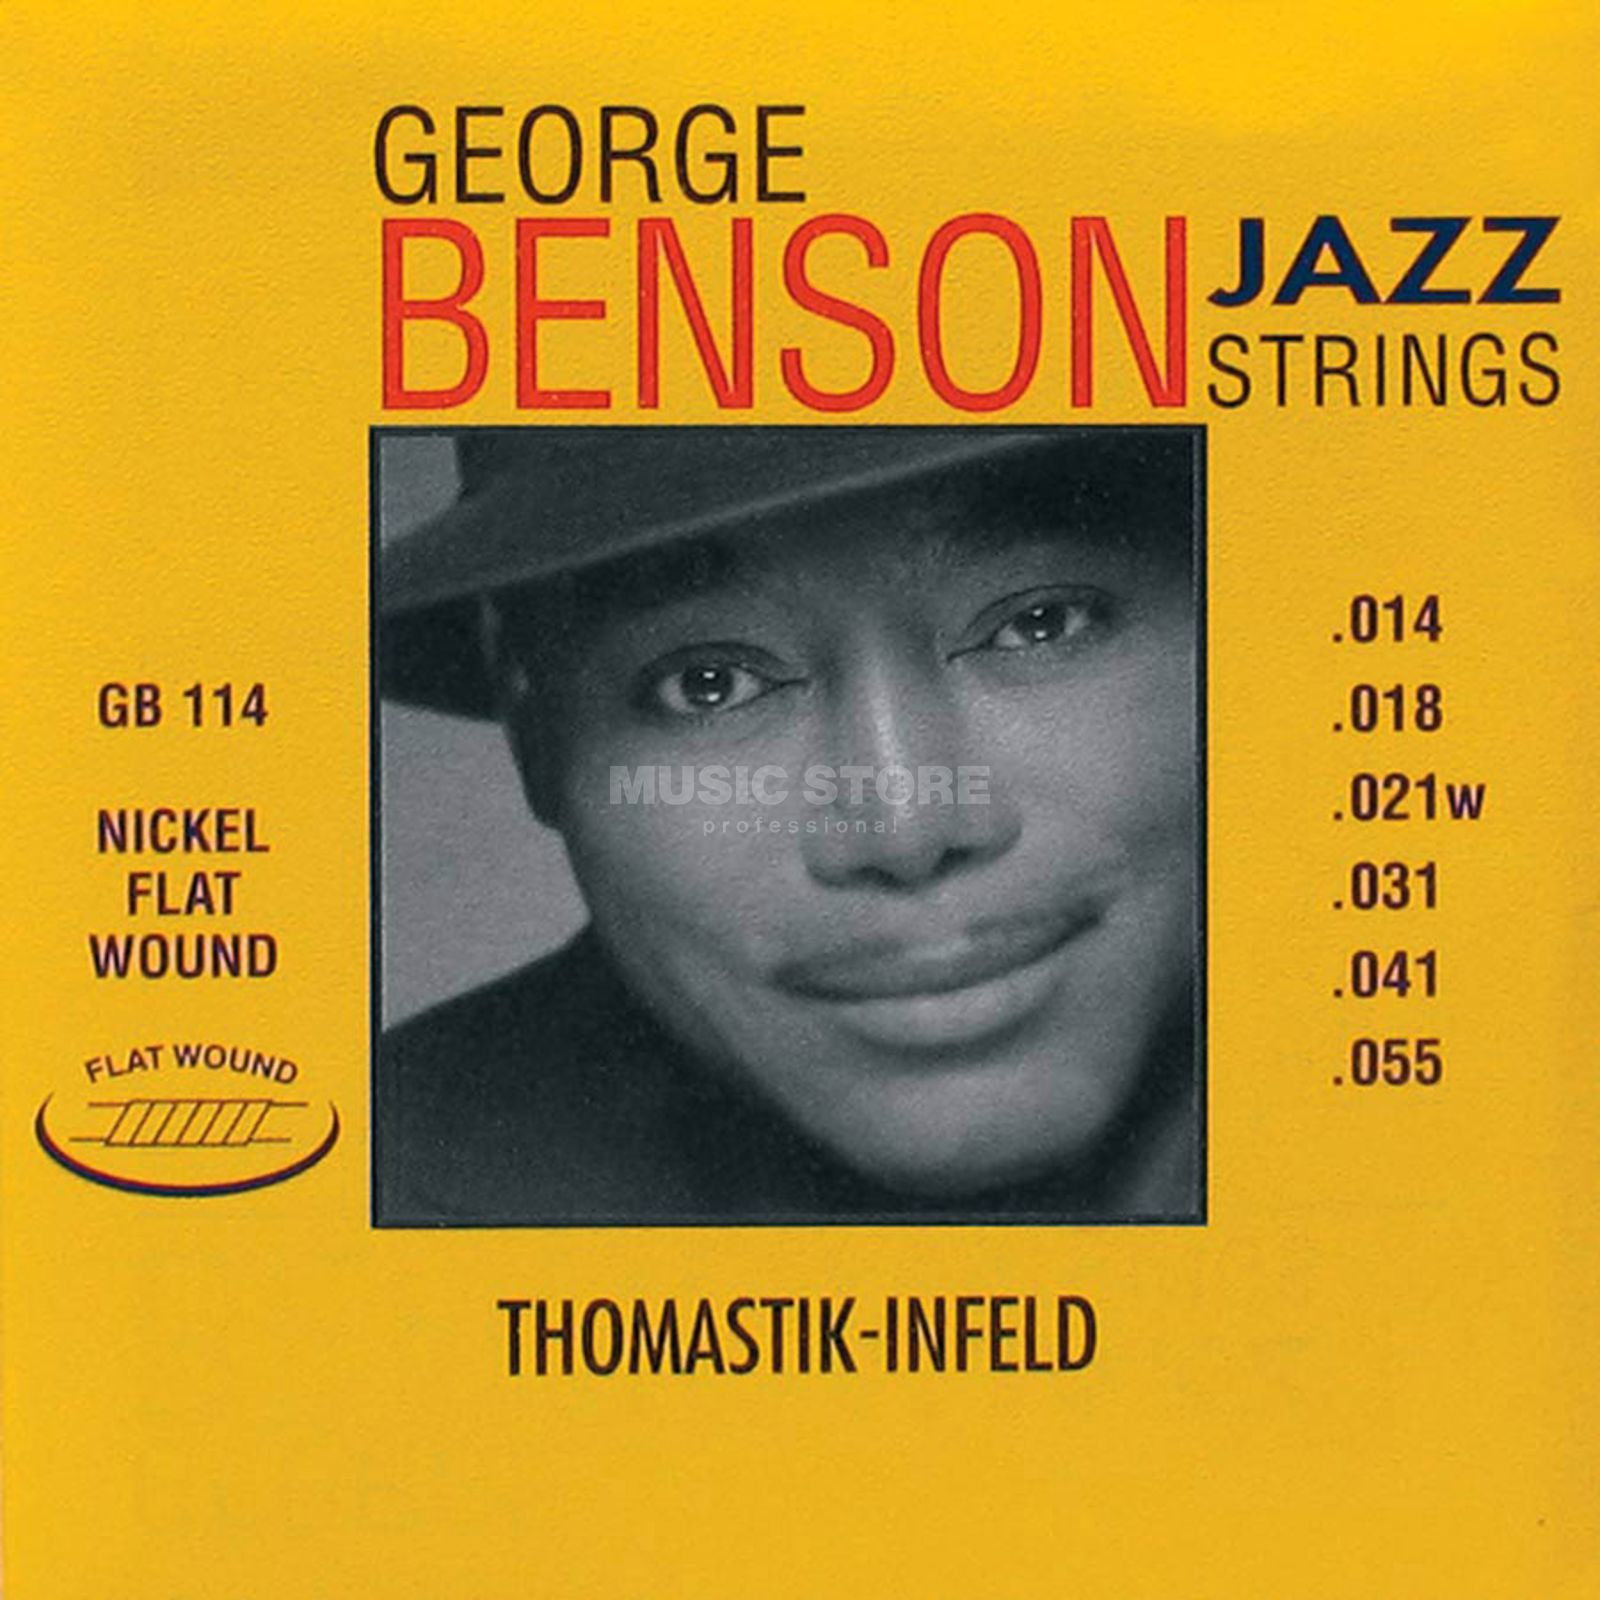 Thomastik Saiten 14-55 George Benson GB 114 Nickel Flat Wound Produktbild